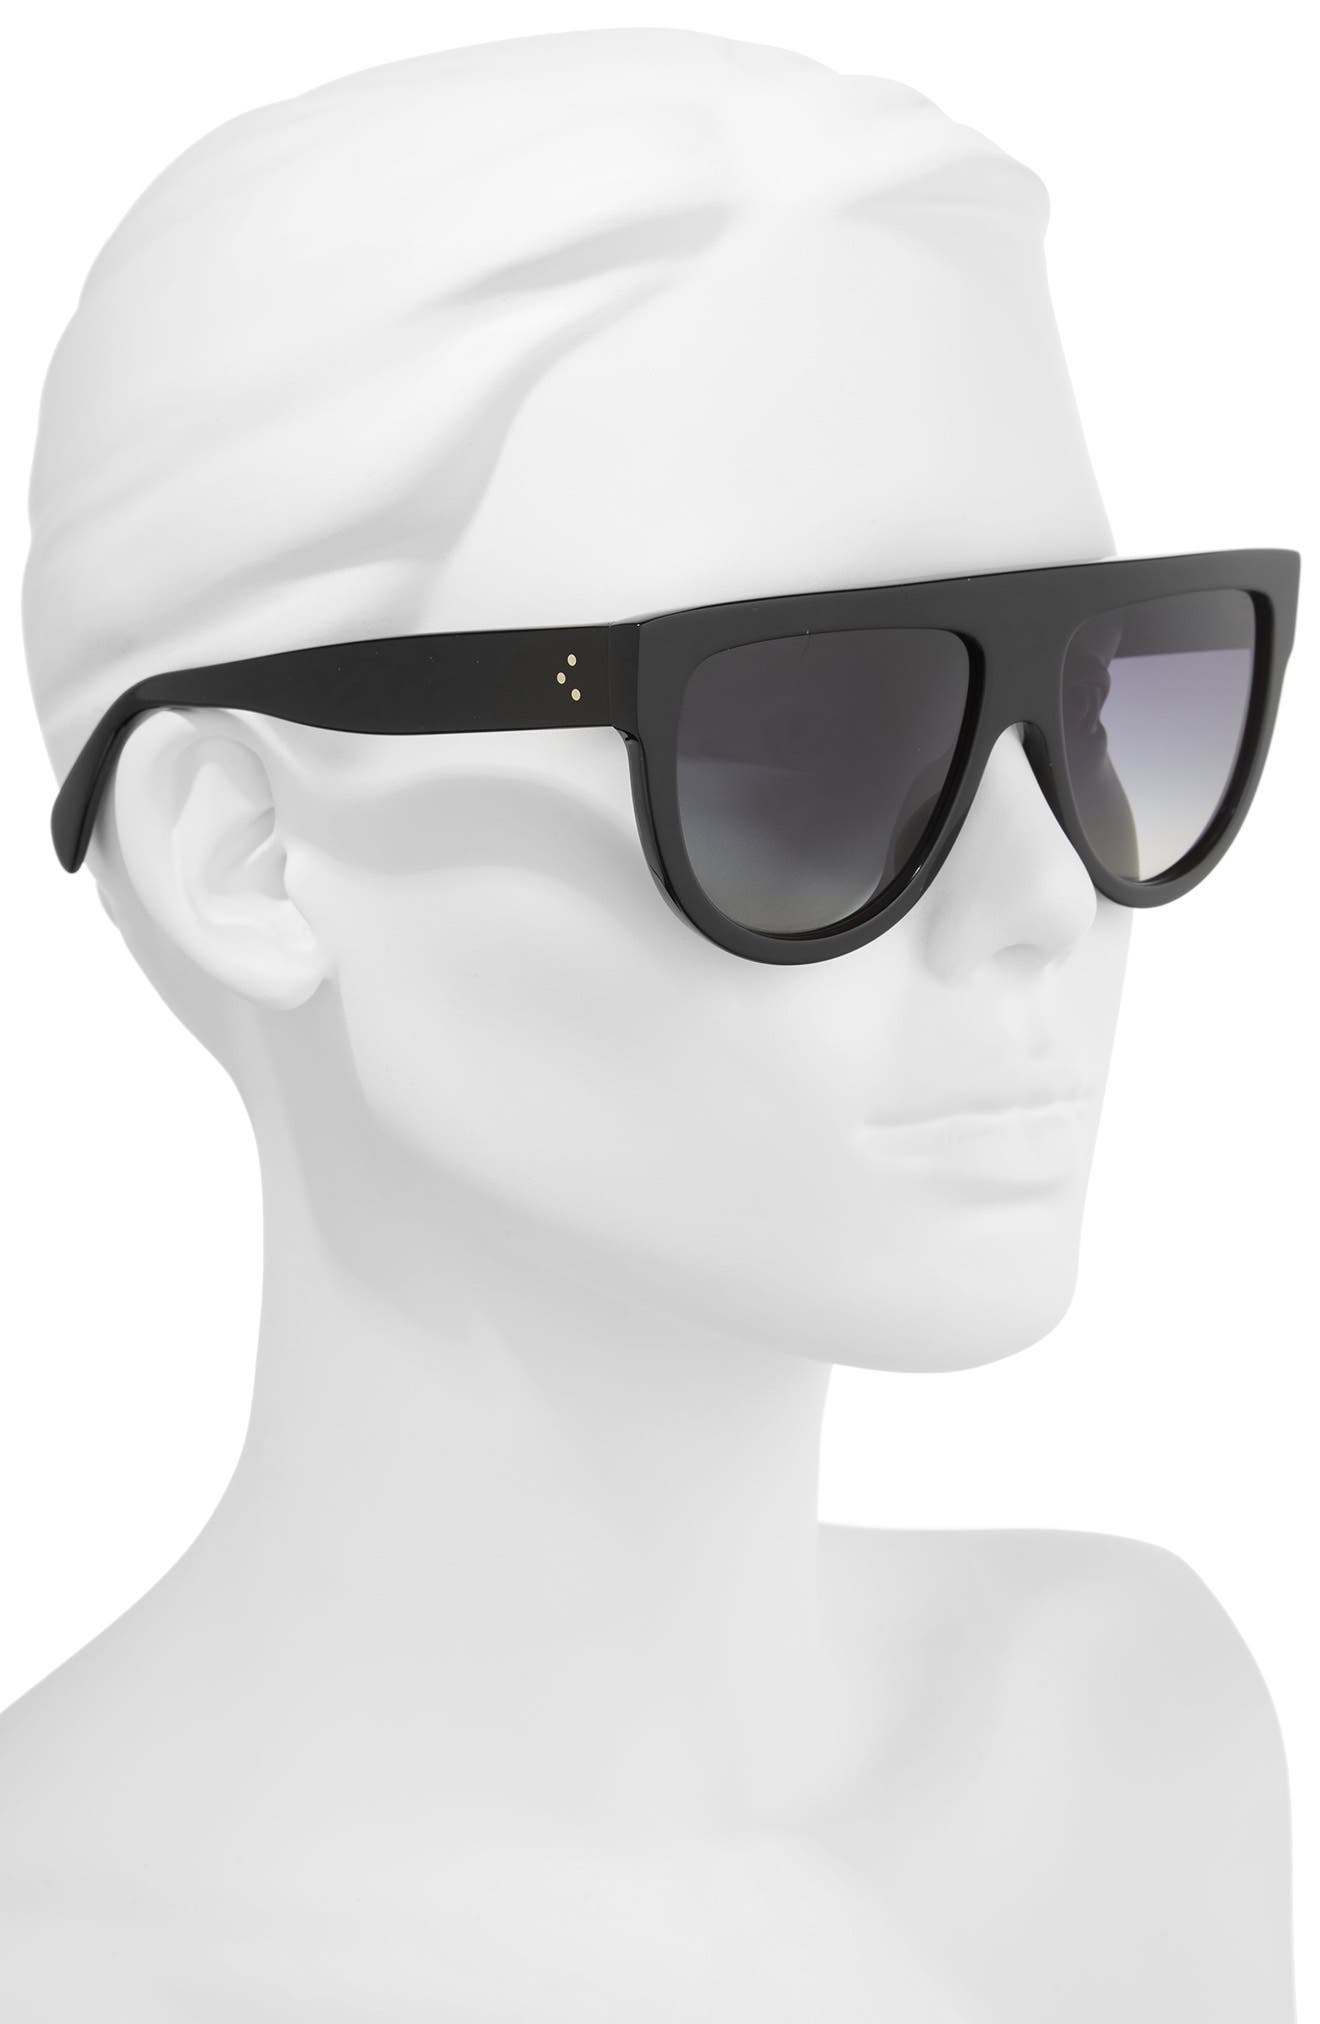 58mm Pilot Sunglasses,                             Alternate thumbnail 2, color,                             Black/ Smoke